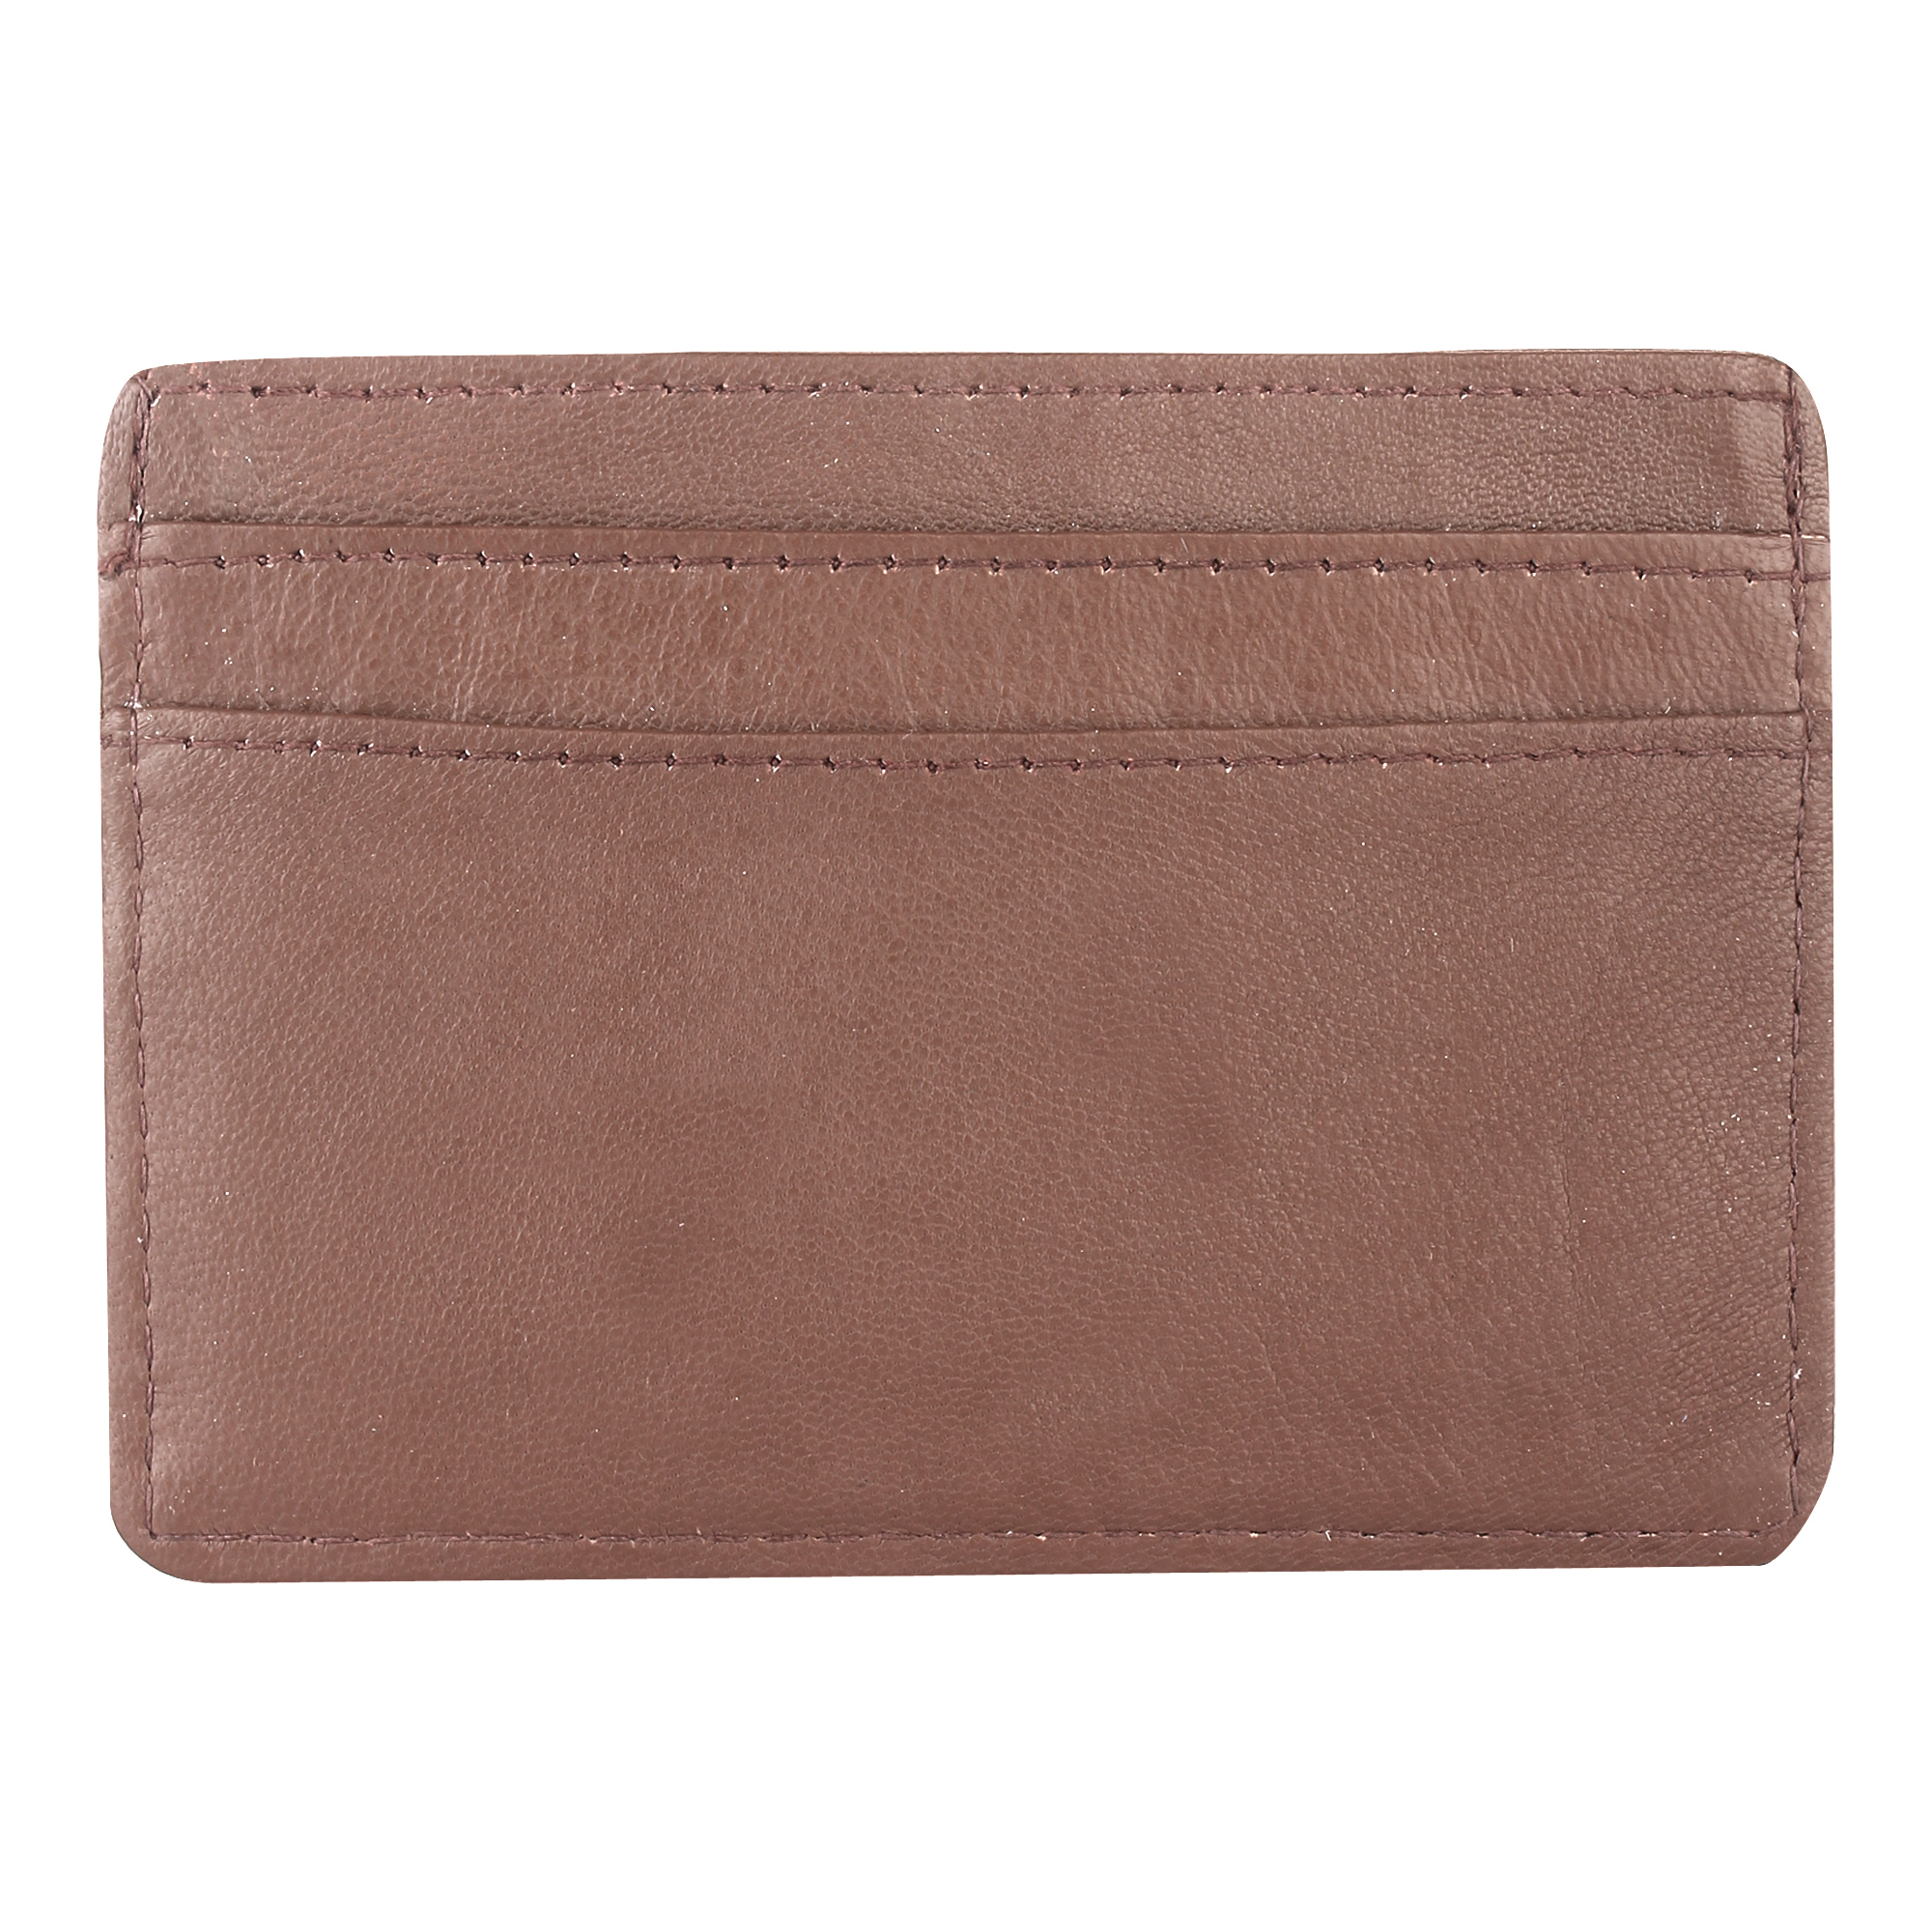 Leather Card Holder Wallet Manufacturers In Palermo, Card Holder Wallet Suppliers In Palermo, Card Holder Wallet Wholesalers In Palermo, Card Holder Wallet Traders In Palermo